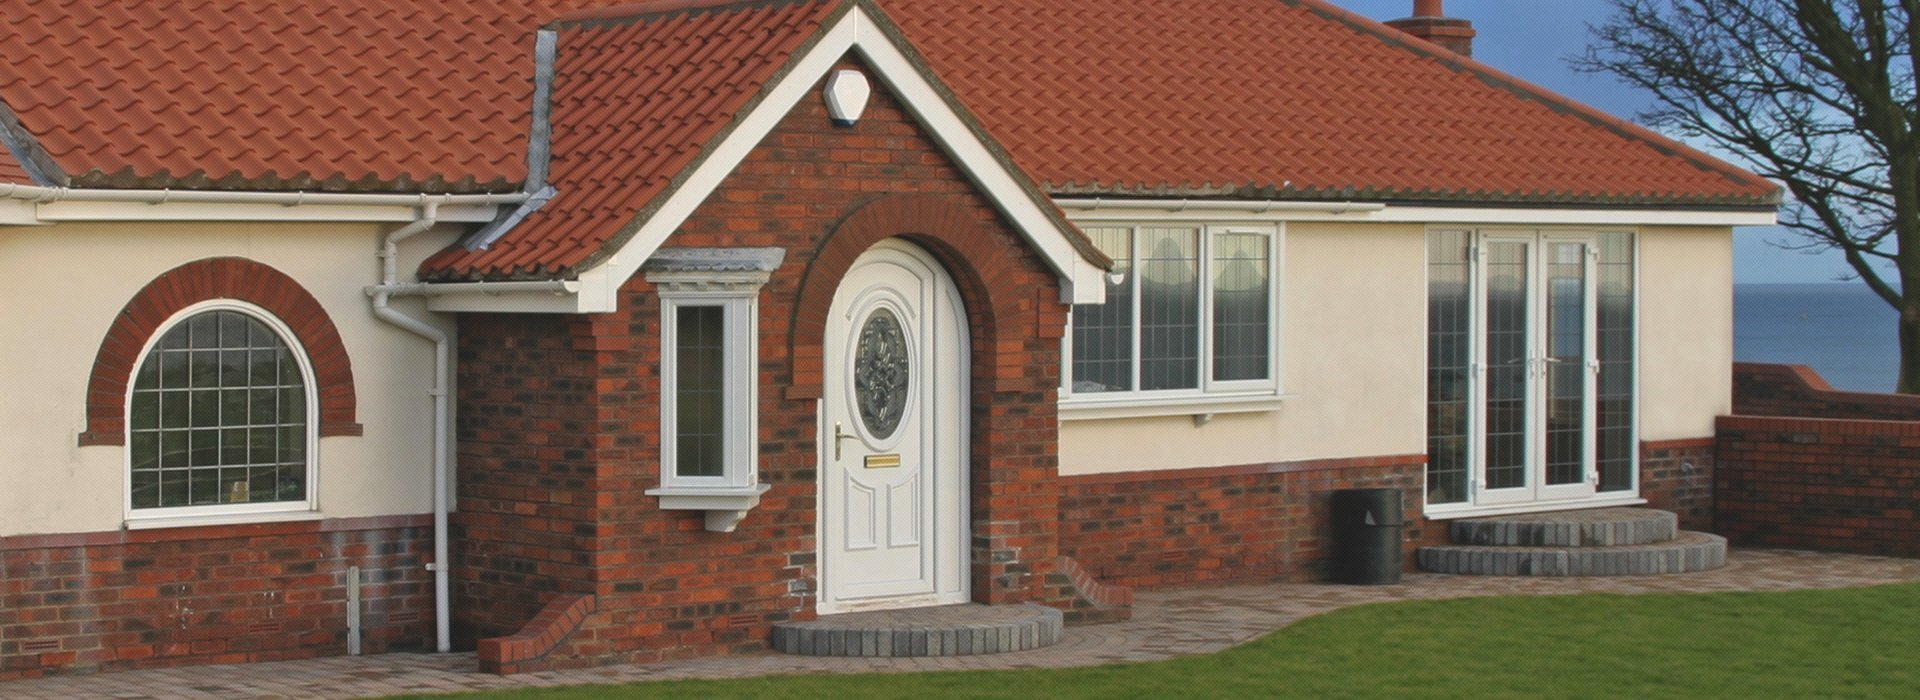 A bungalow with double glazing